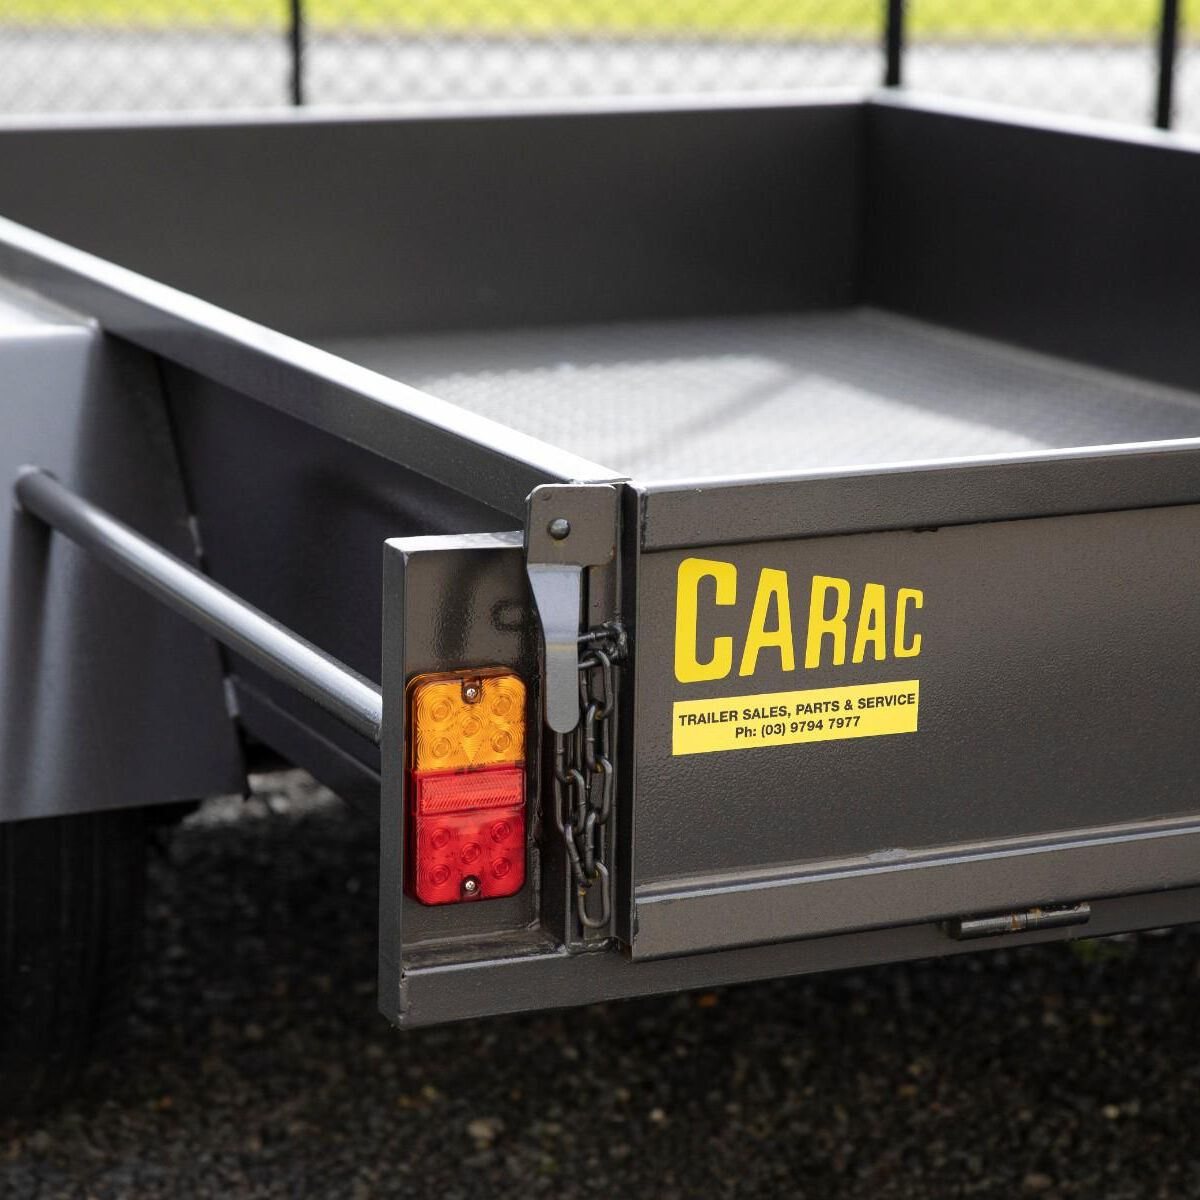 Carac Trailers for Sale